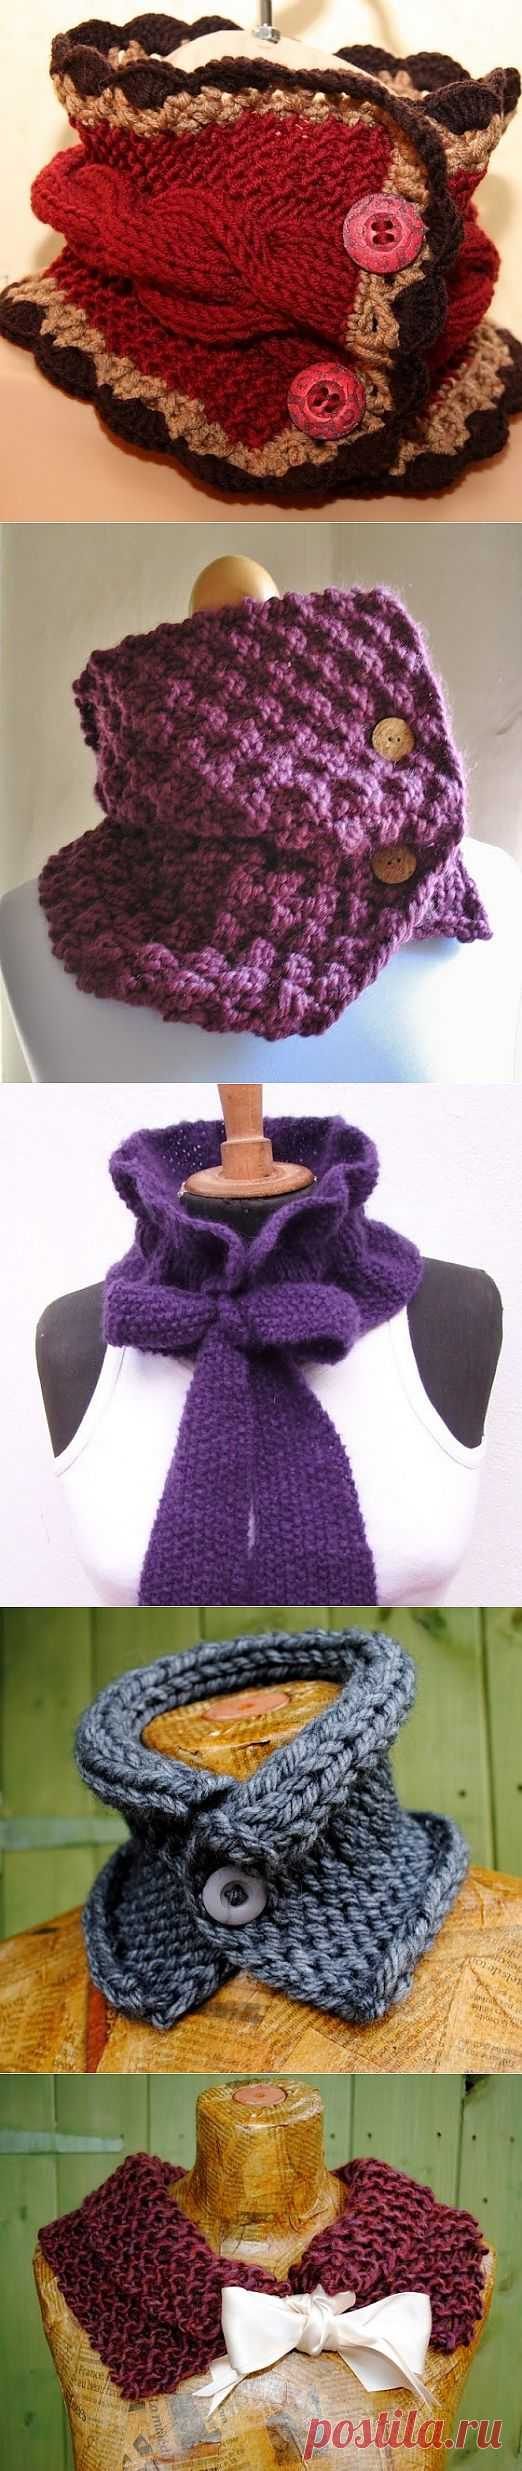 SIMPLE AND BEAUTIFUL KNITTED IDEAS.